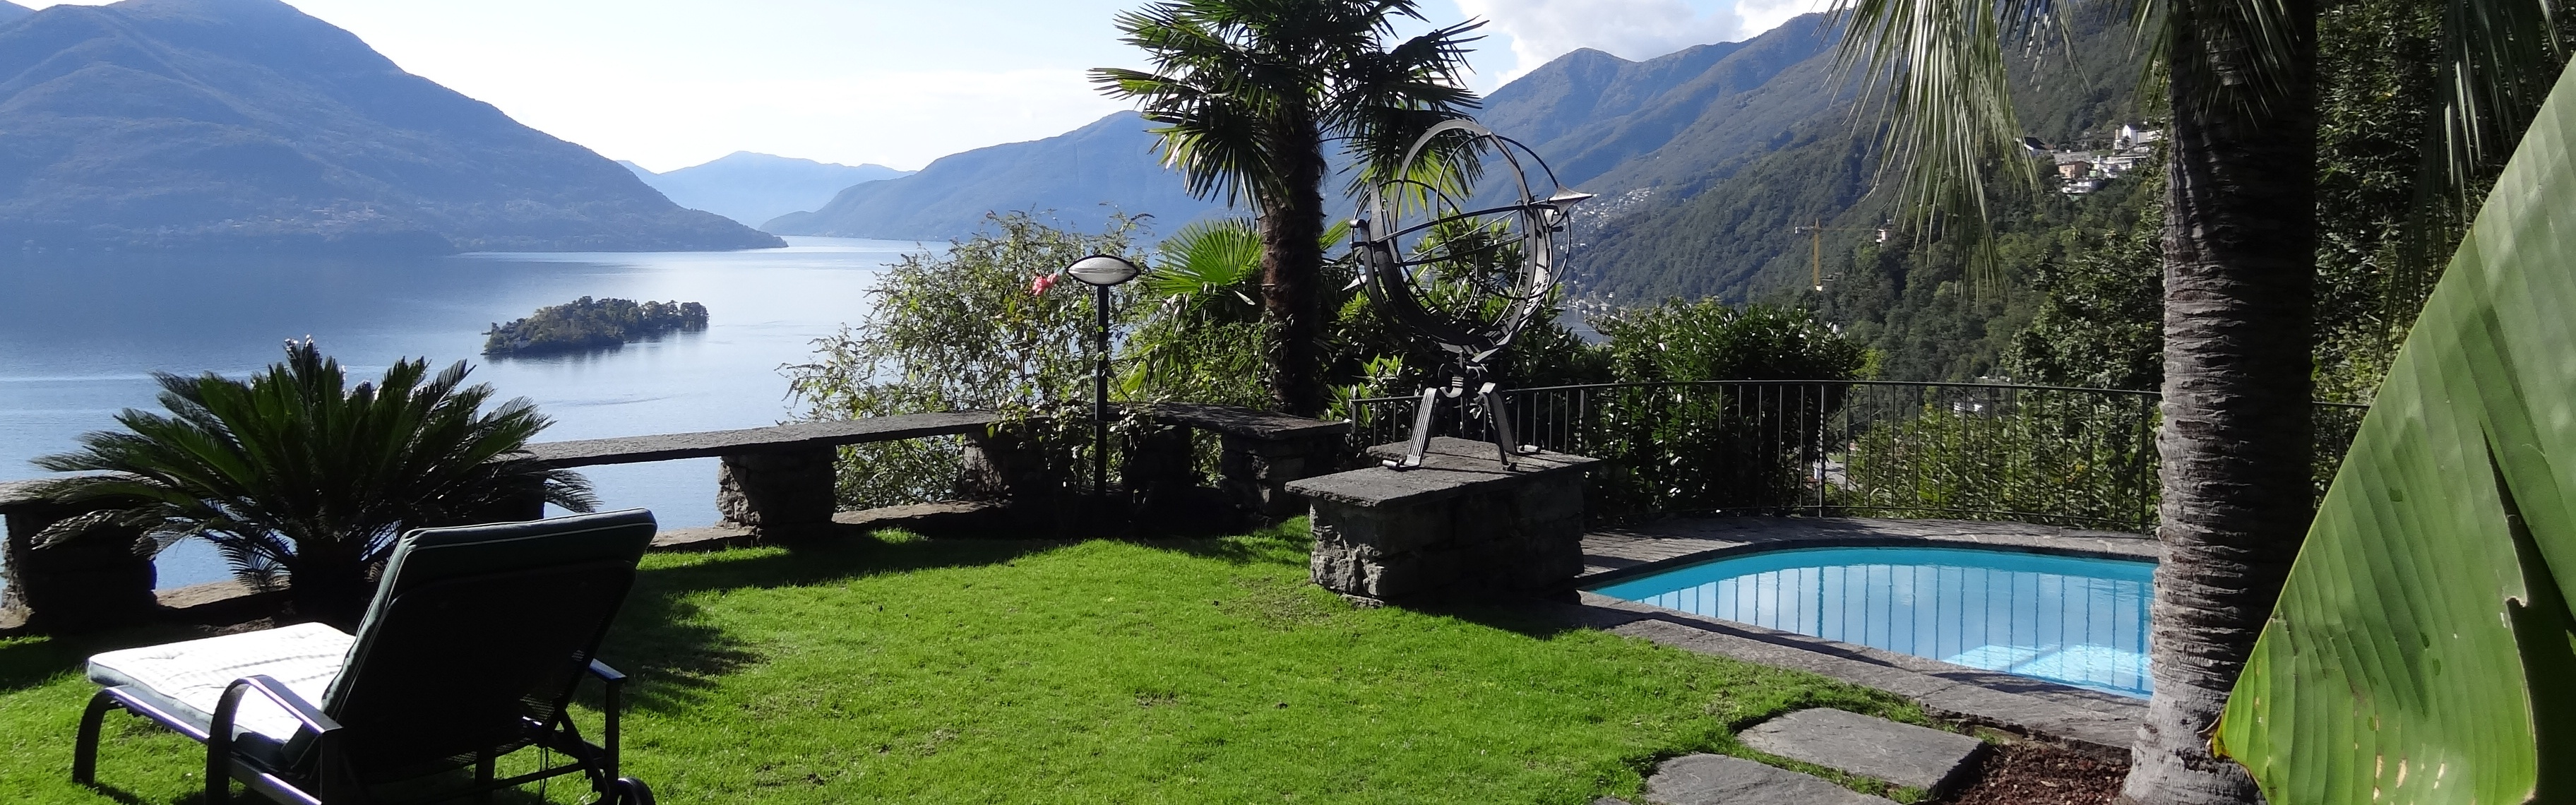 Immobilien in Ascona - slider 3 neu.JPG